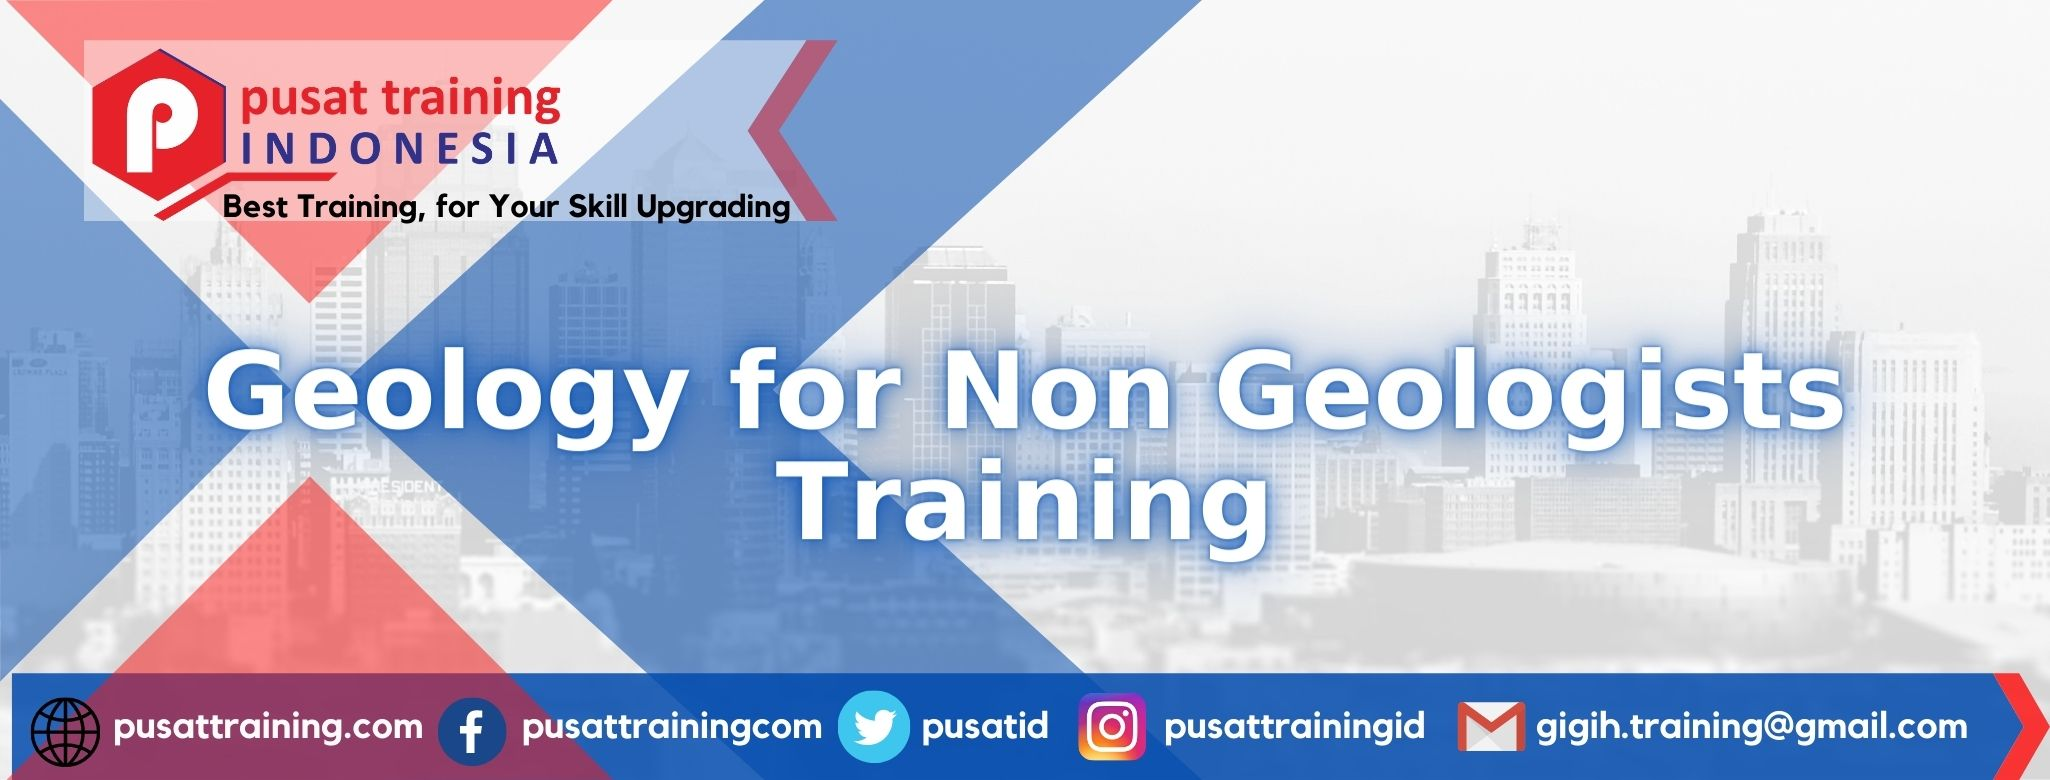 Geology-for-Non-Geologists-Training